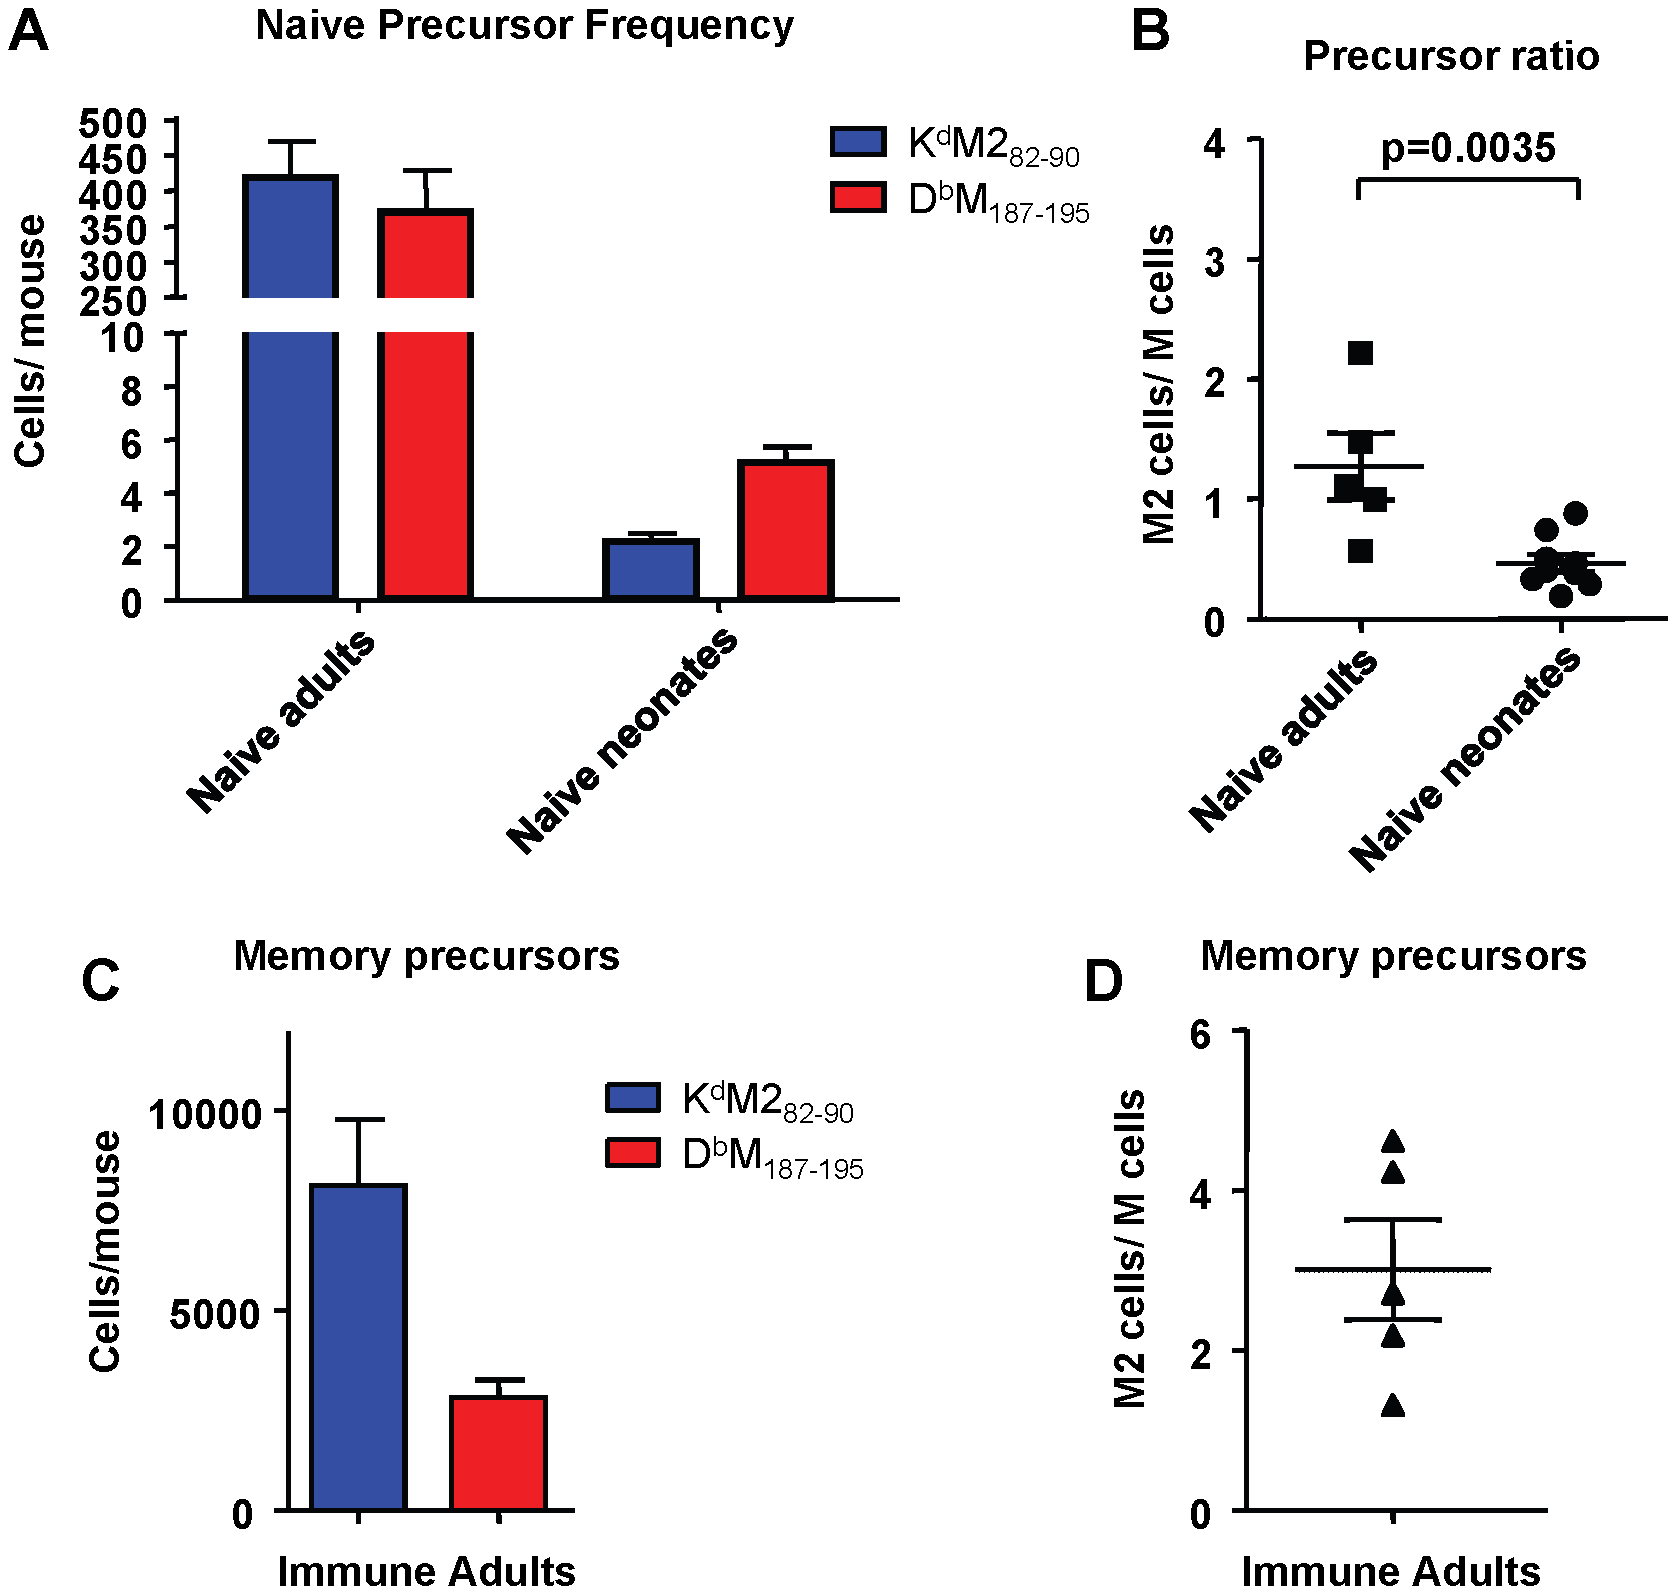 Epitope-specific CD8+ T cell precursor frequency analysis in adult and neonatal mice.